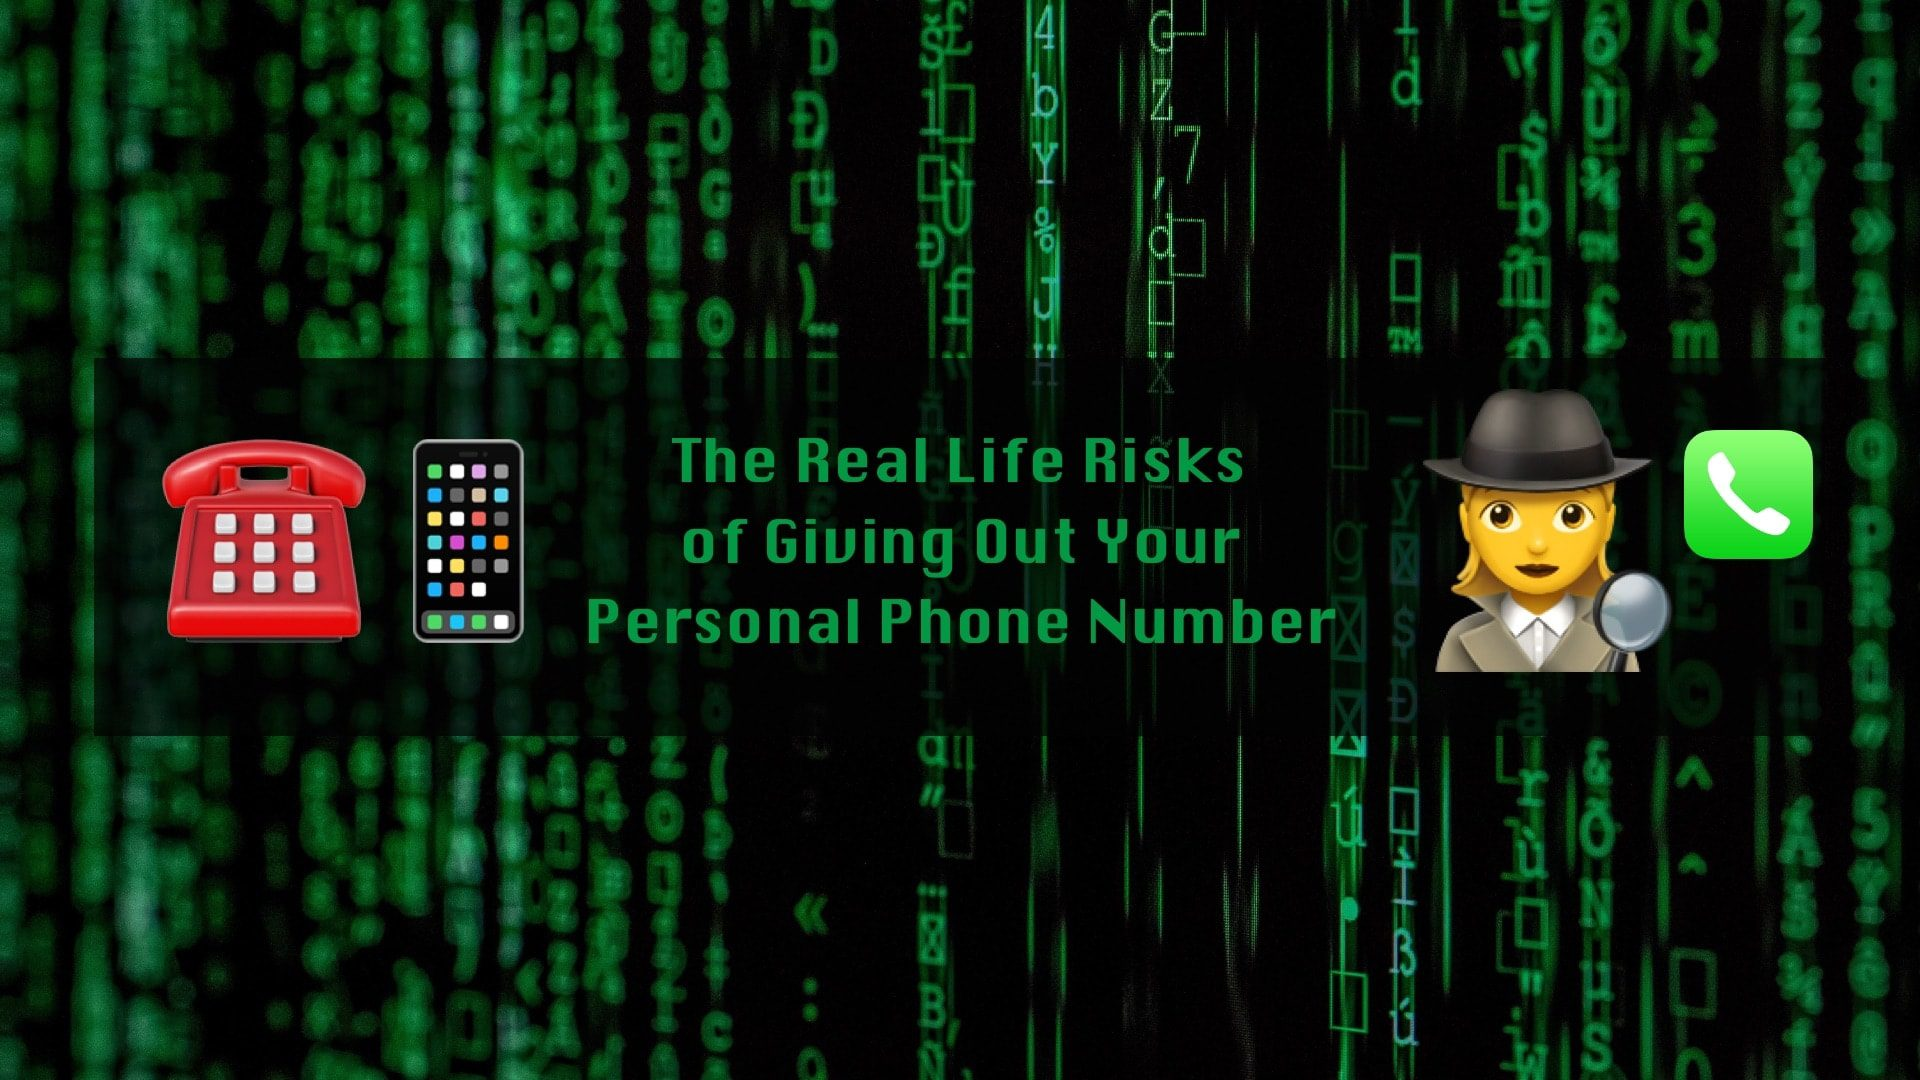 The High Risks of Giving Out Your Personal Phone Number for Business